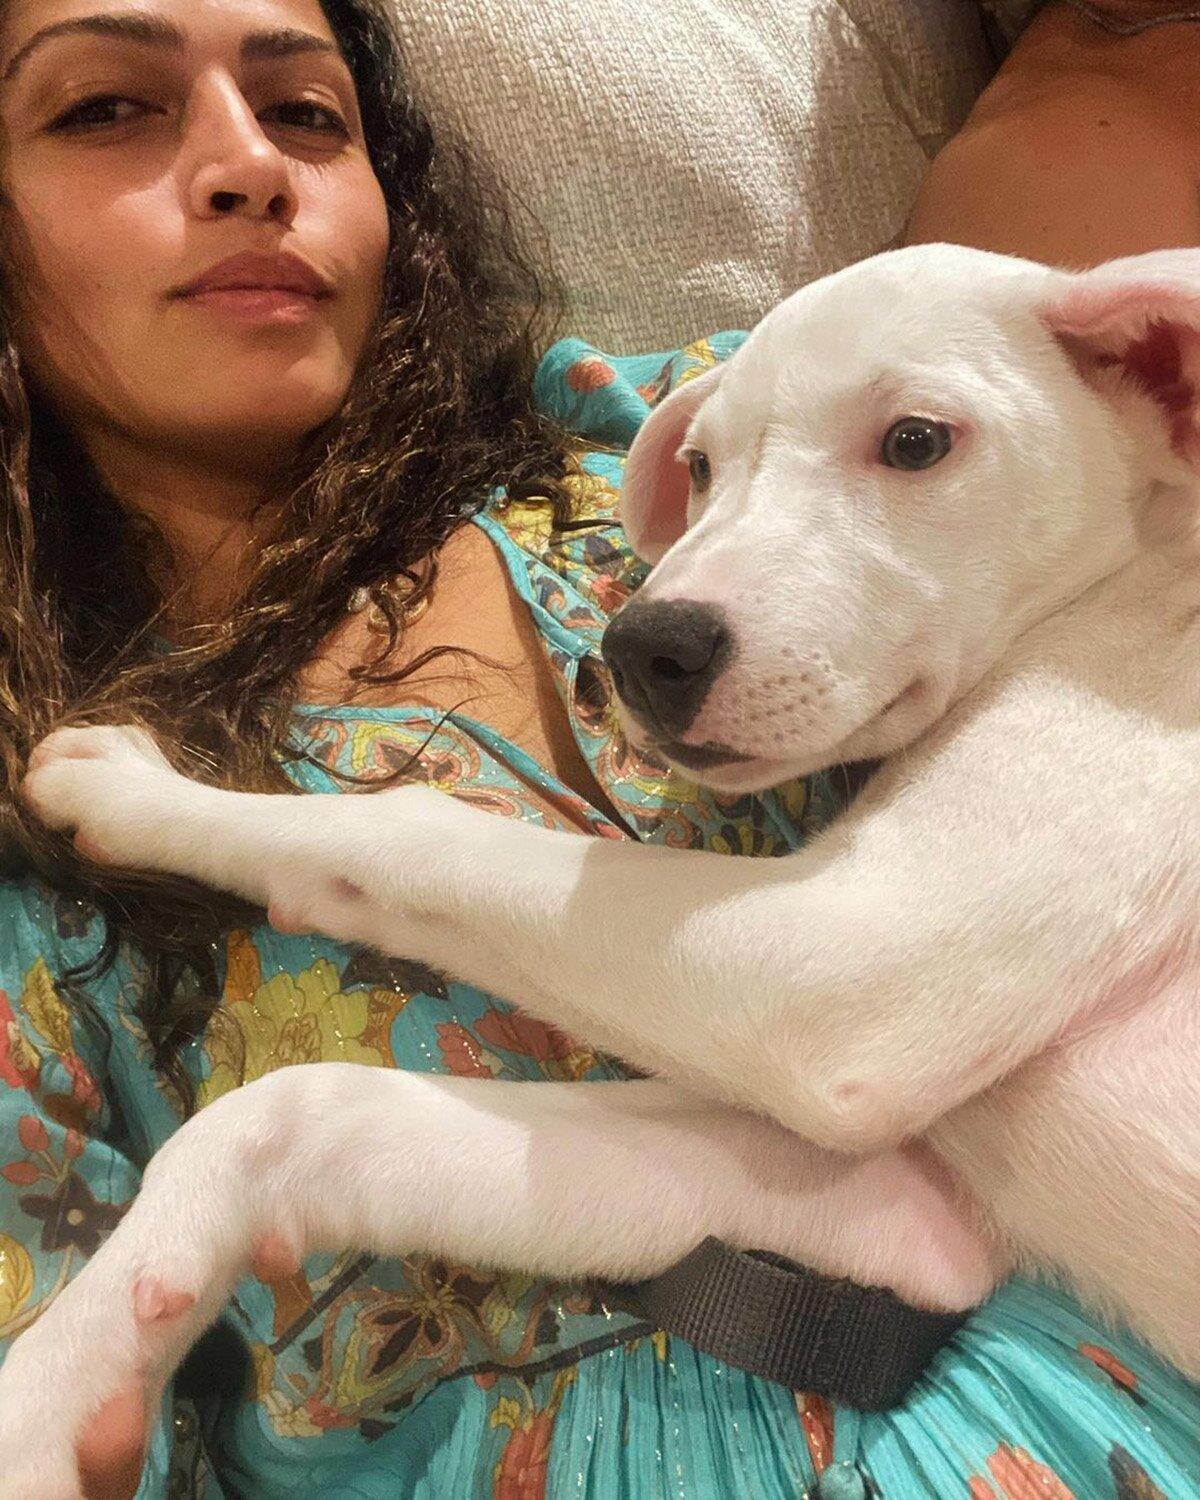 Camila Alves McConaughey Shows Off New Adopted Family Dog: 'What Was I Thinking!'